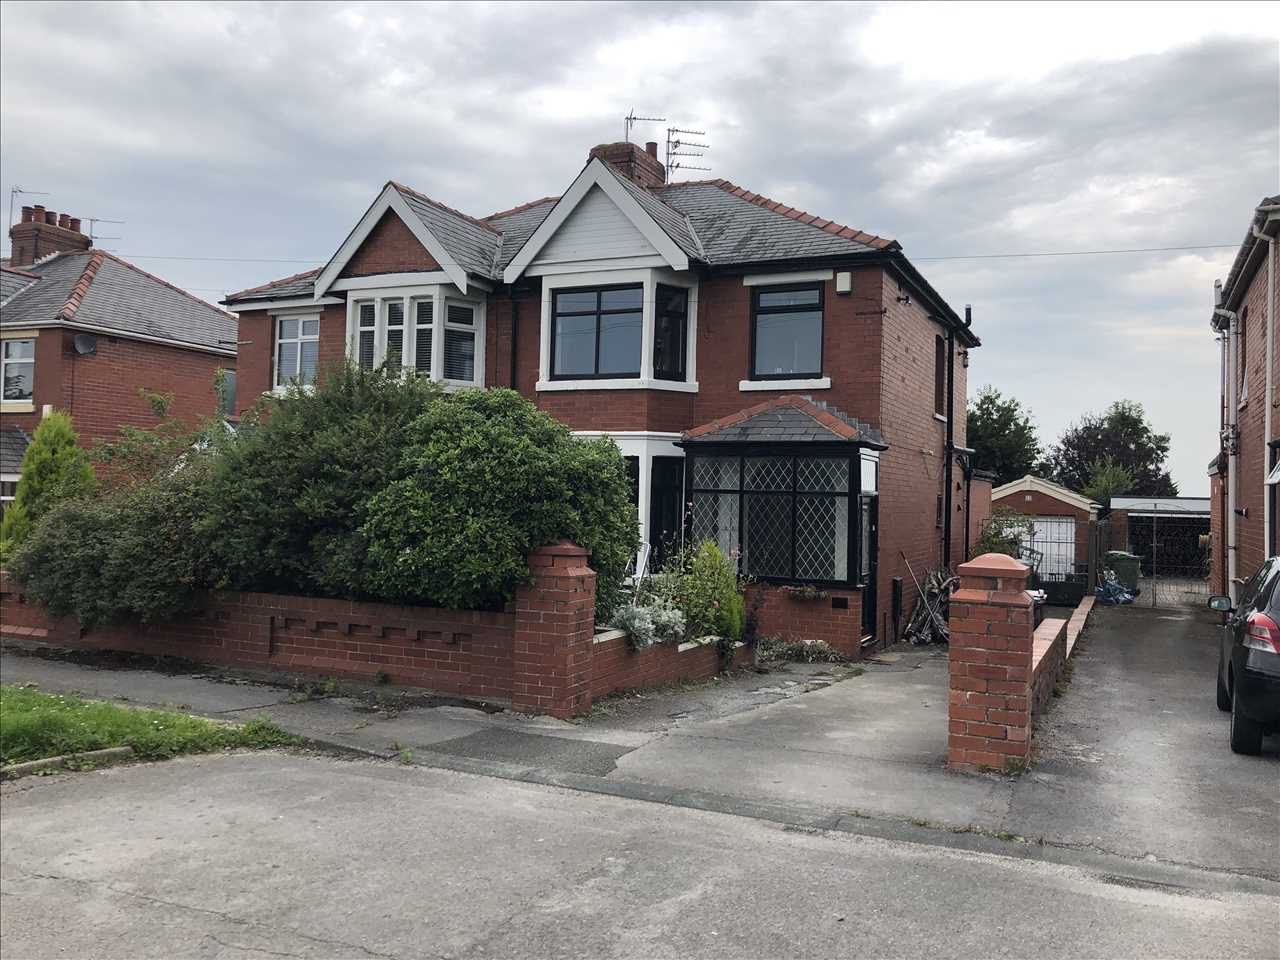 3 bed semi-detached for sale in Peel Hill, Blackpool, FY4